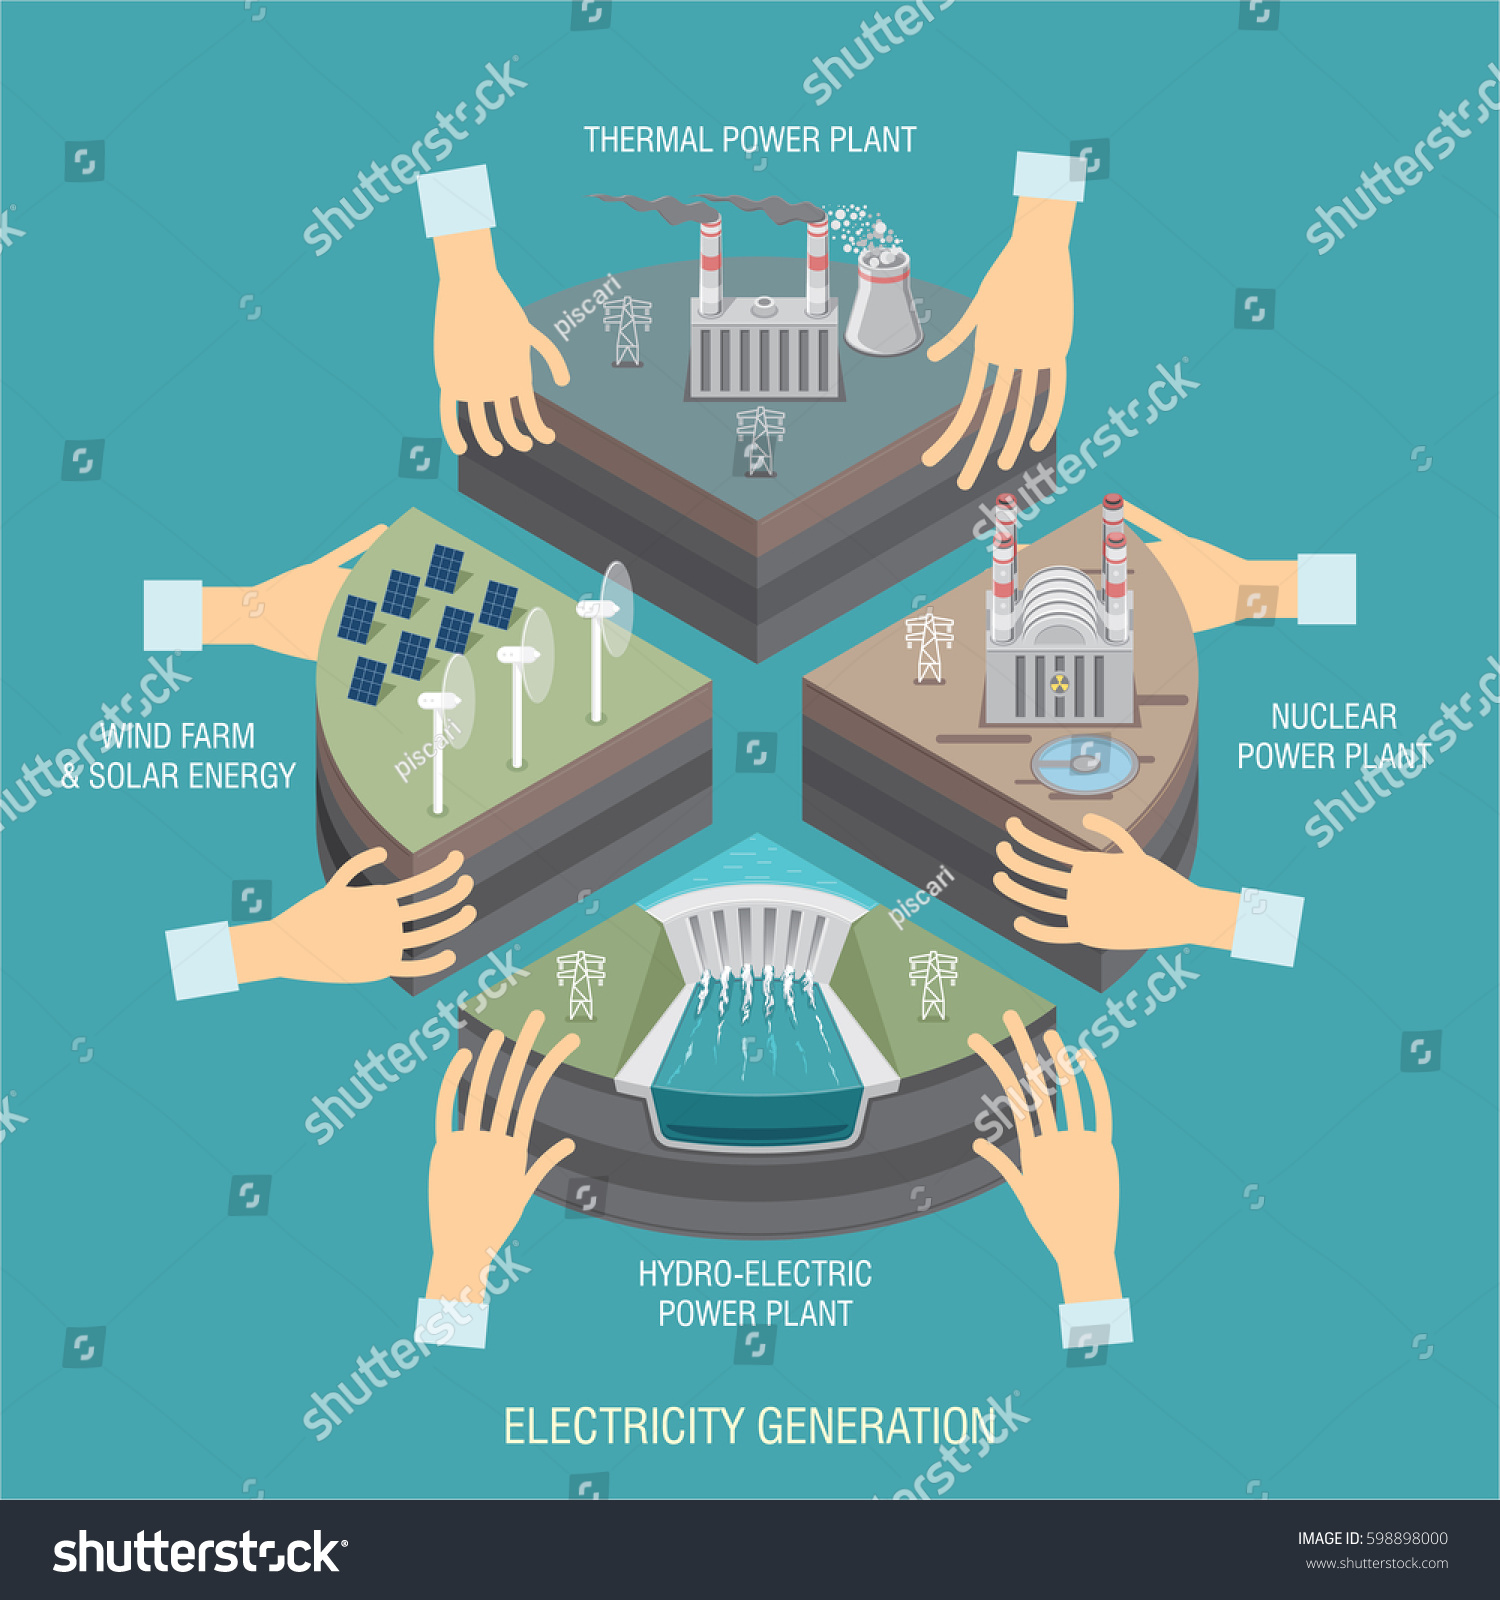 Power Industry Diagram Energy Sector Solar Stock Vector Royalty Hydro Plant With Wind Thermal And